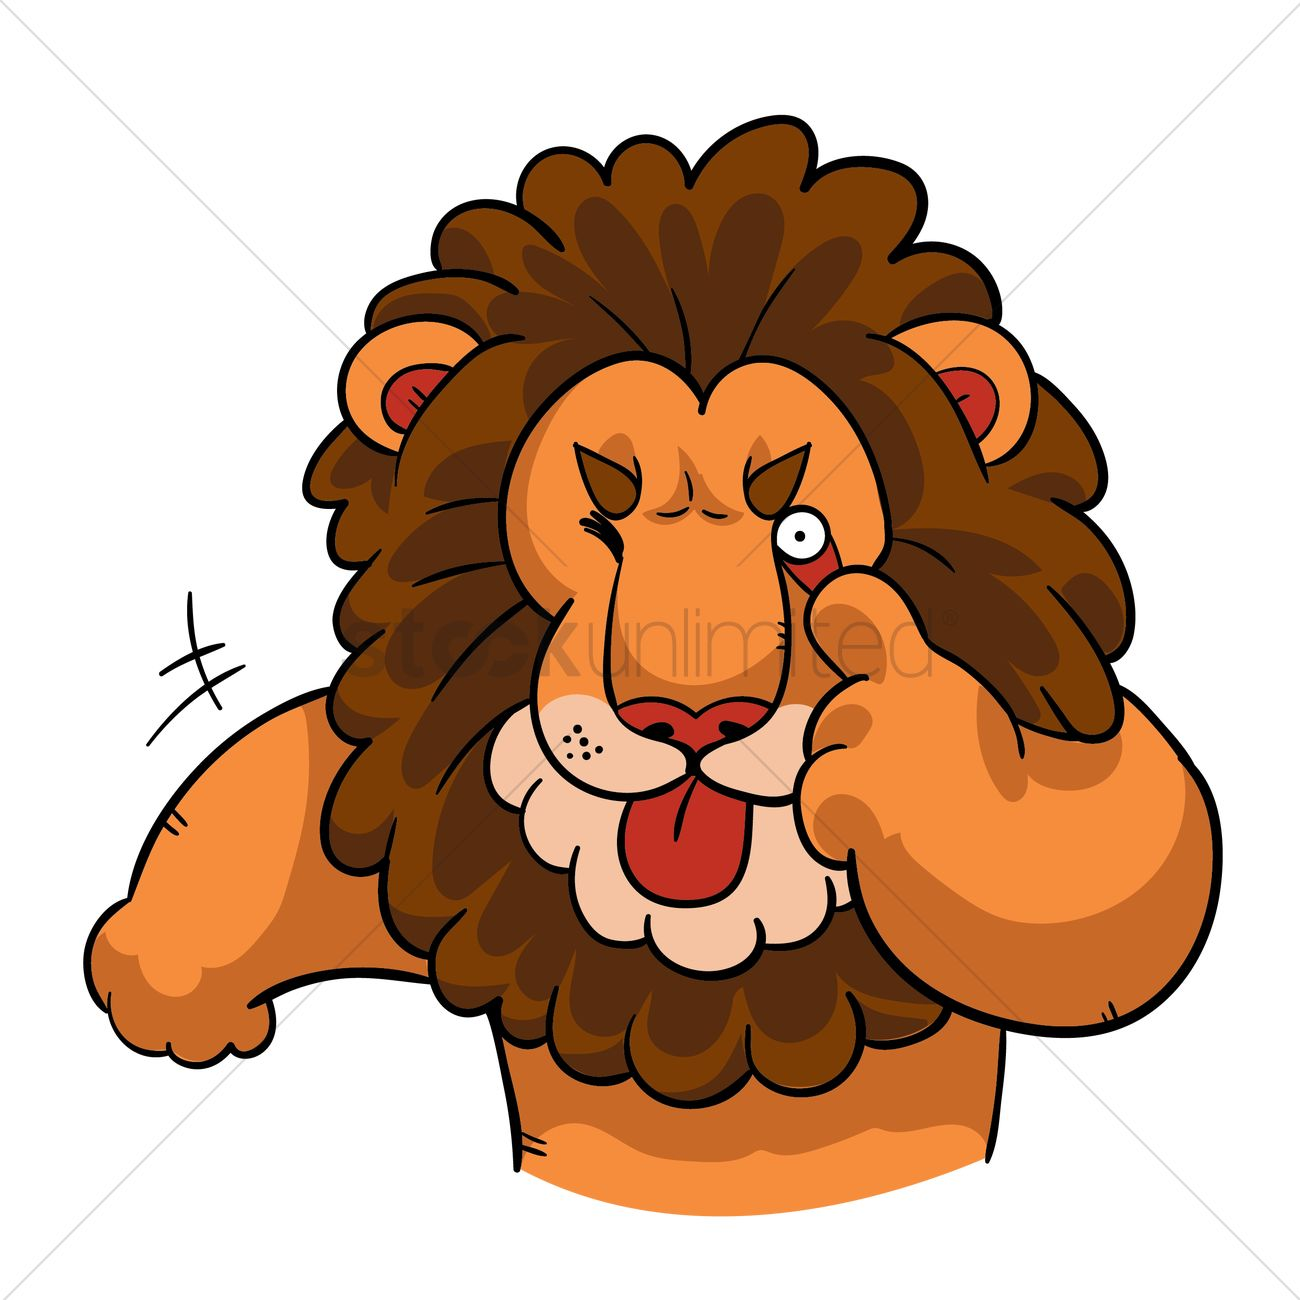 cartoon lion makes a taunting face vector image 1957590 rh stockunlimited com lion cartoon face mask lion face cartoon pic